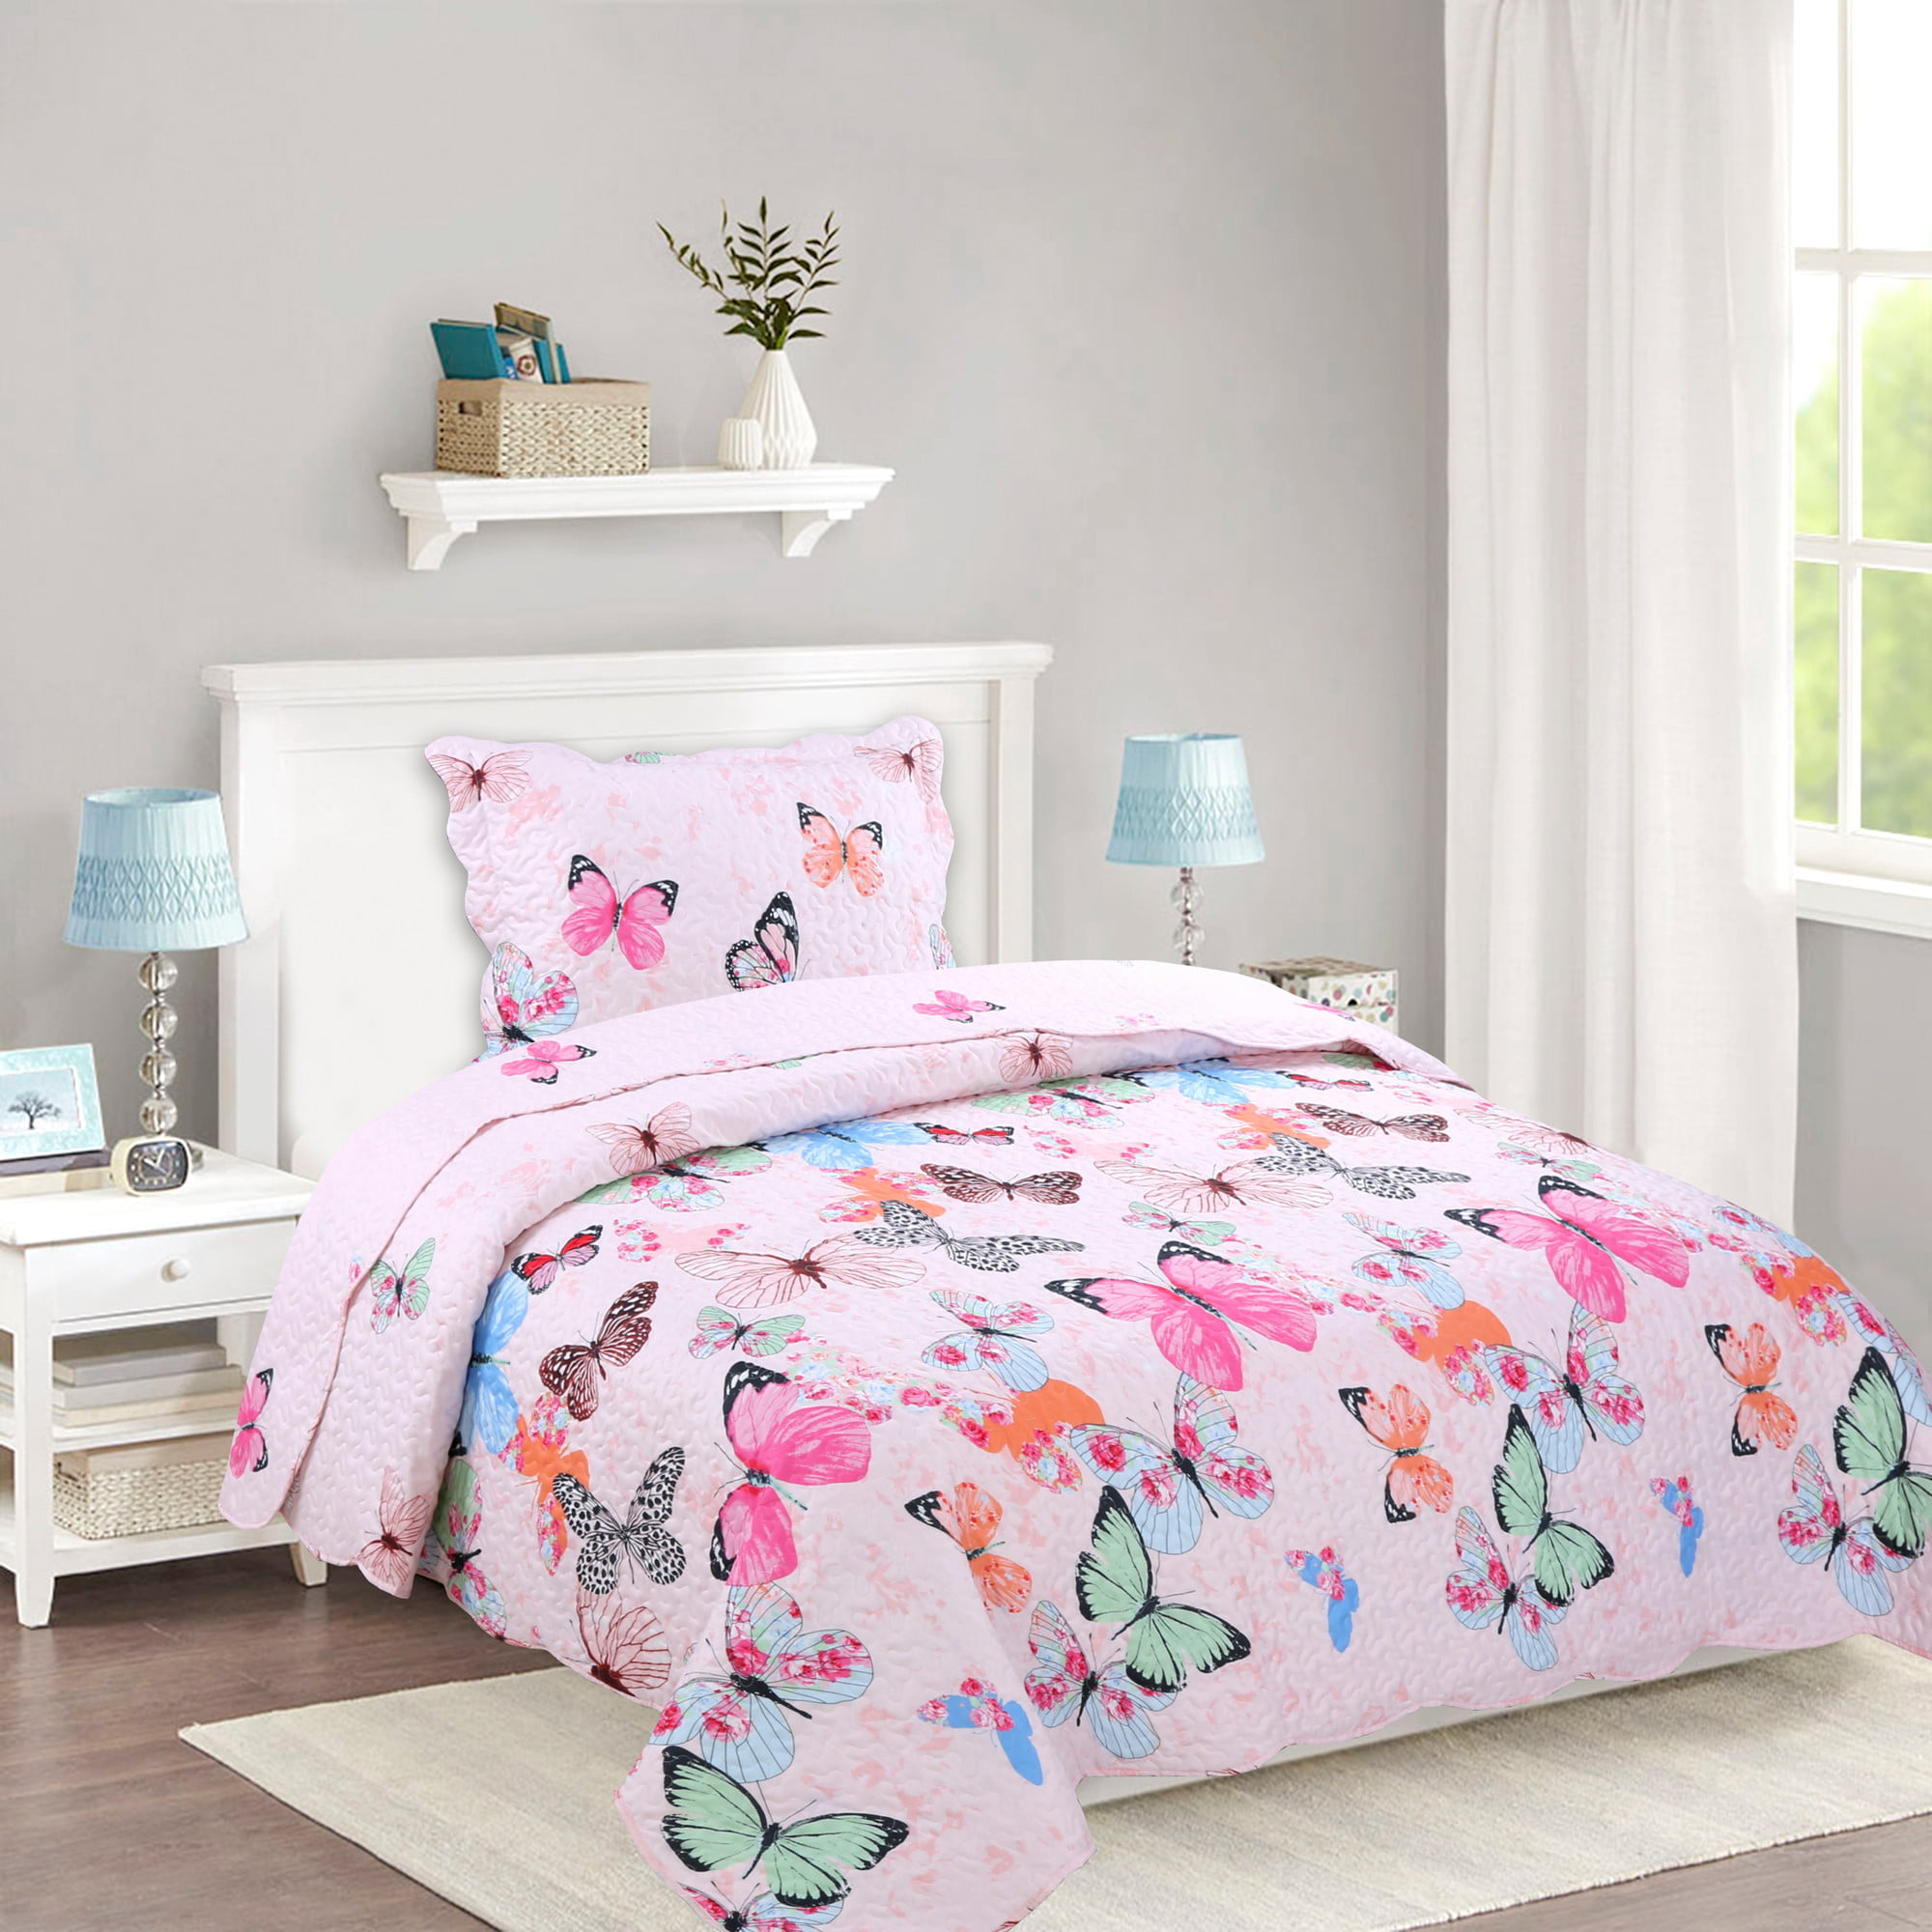 Girls Bright Floral Comforter Set Full Queen Fun Modern ... |Teen Bedding Sets For Fun